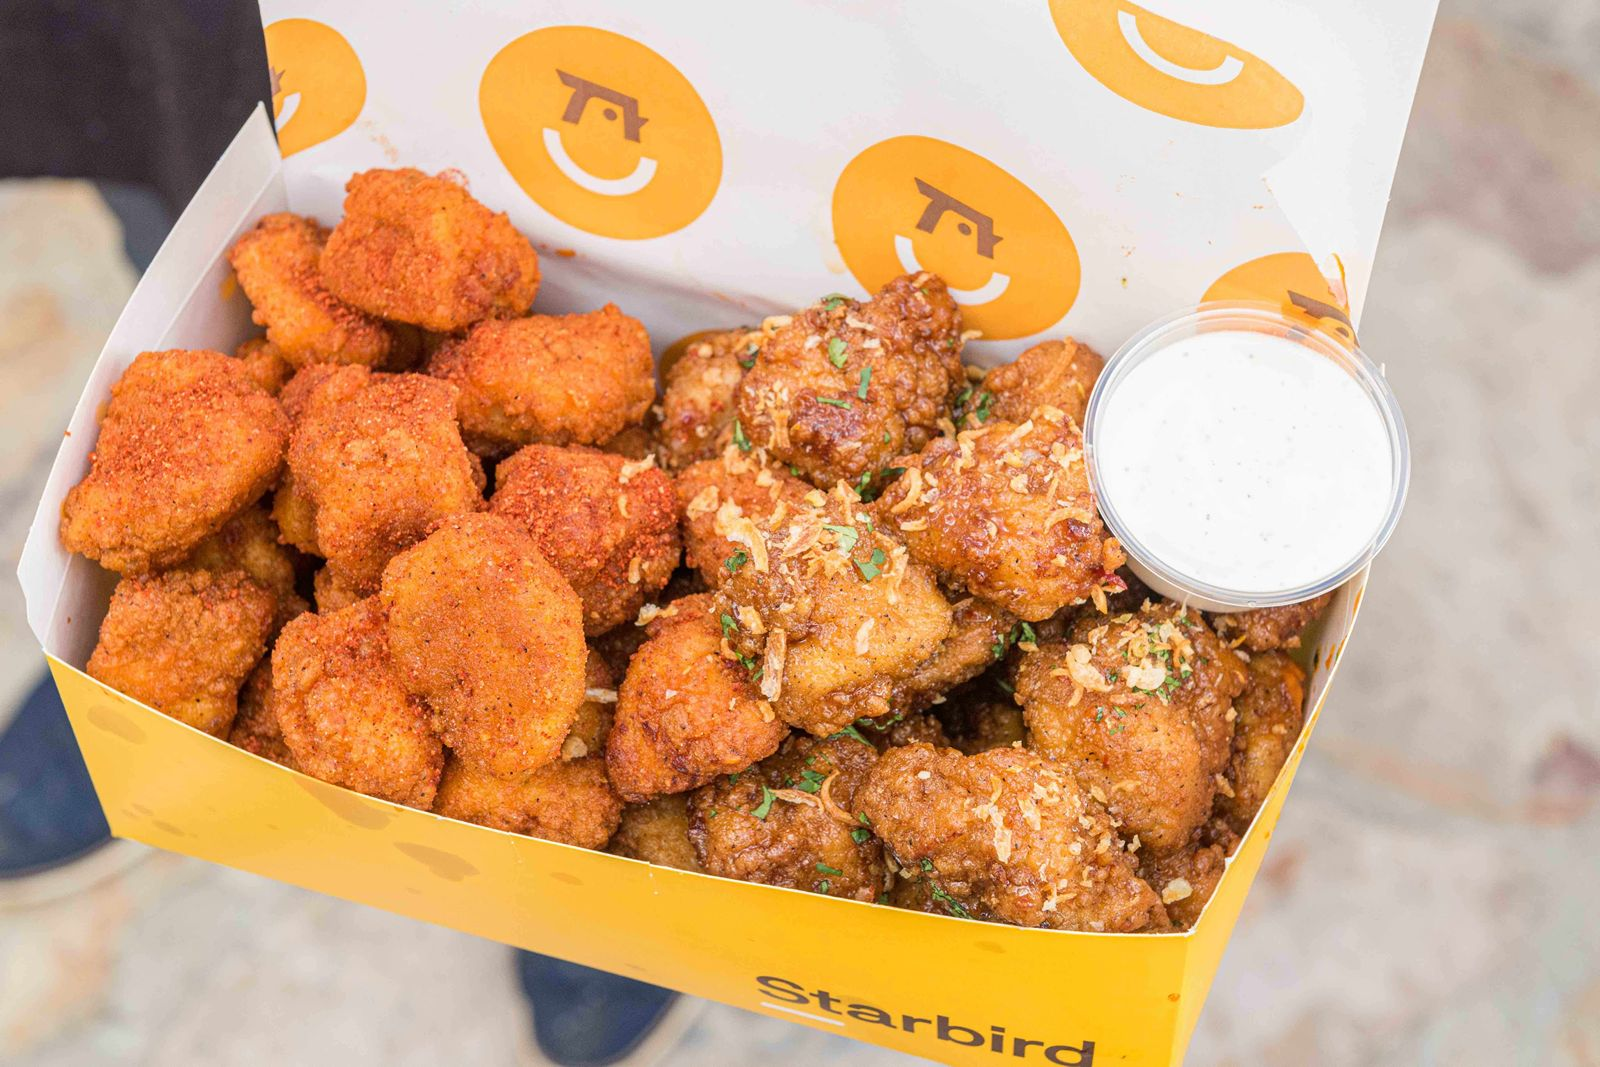 Starbird Chicken opens its ninth location in the San Francisco Bay Area